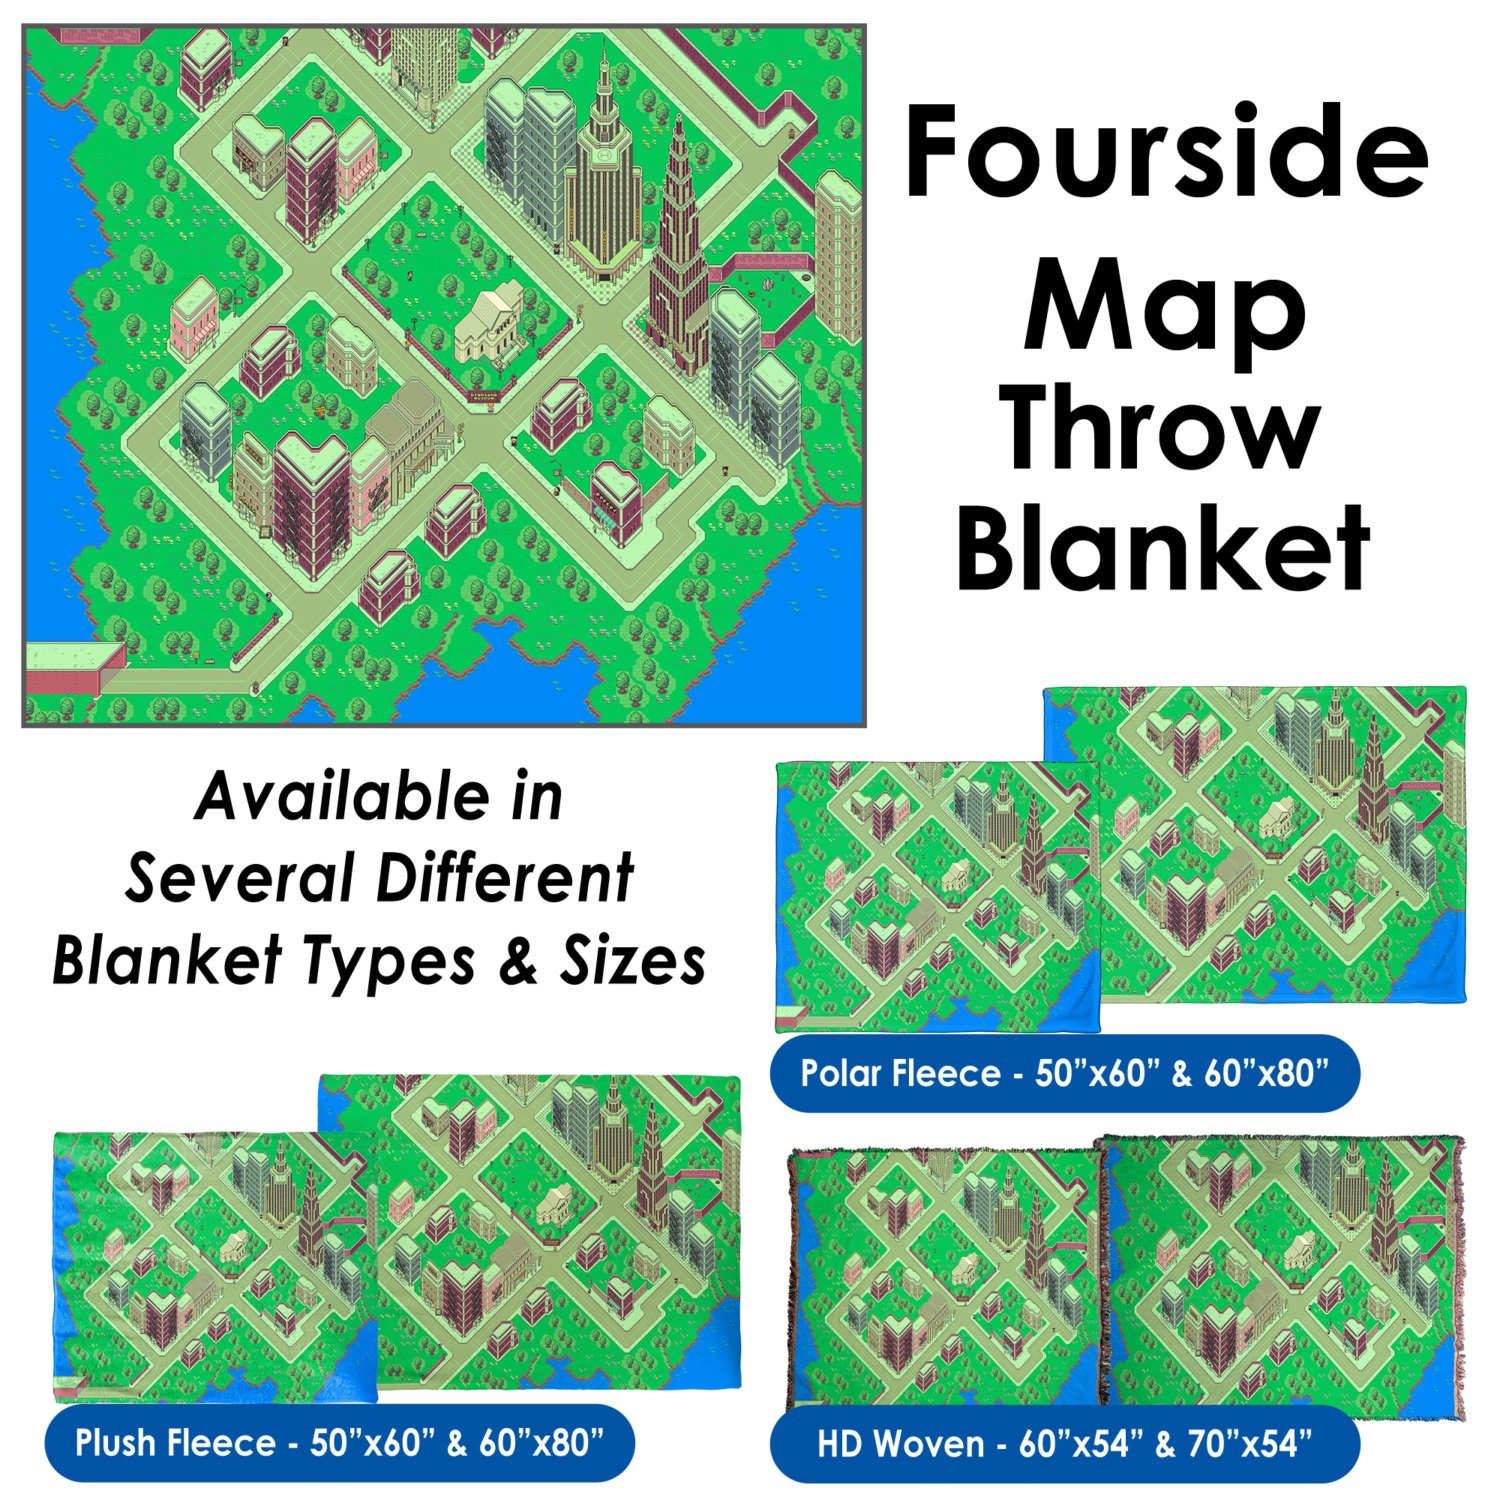 EarthBound, Fourside Map - Throw Blanket / Tapestry Wall Hanging (Plush Fleece, 60''x80'')